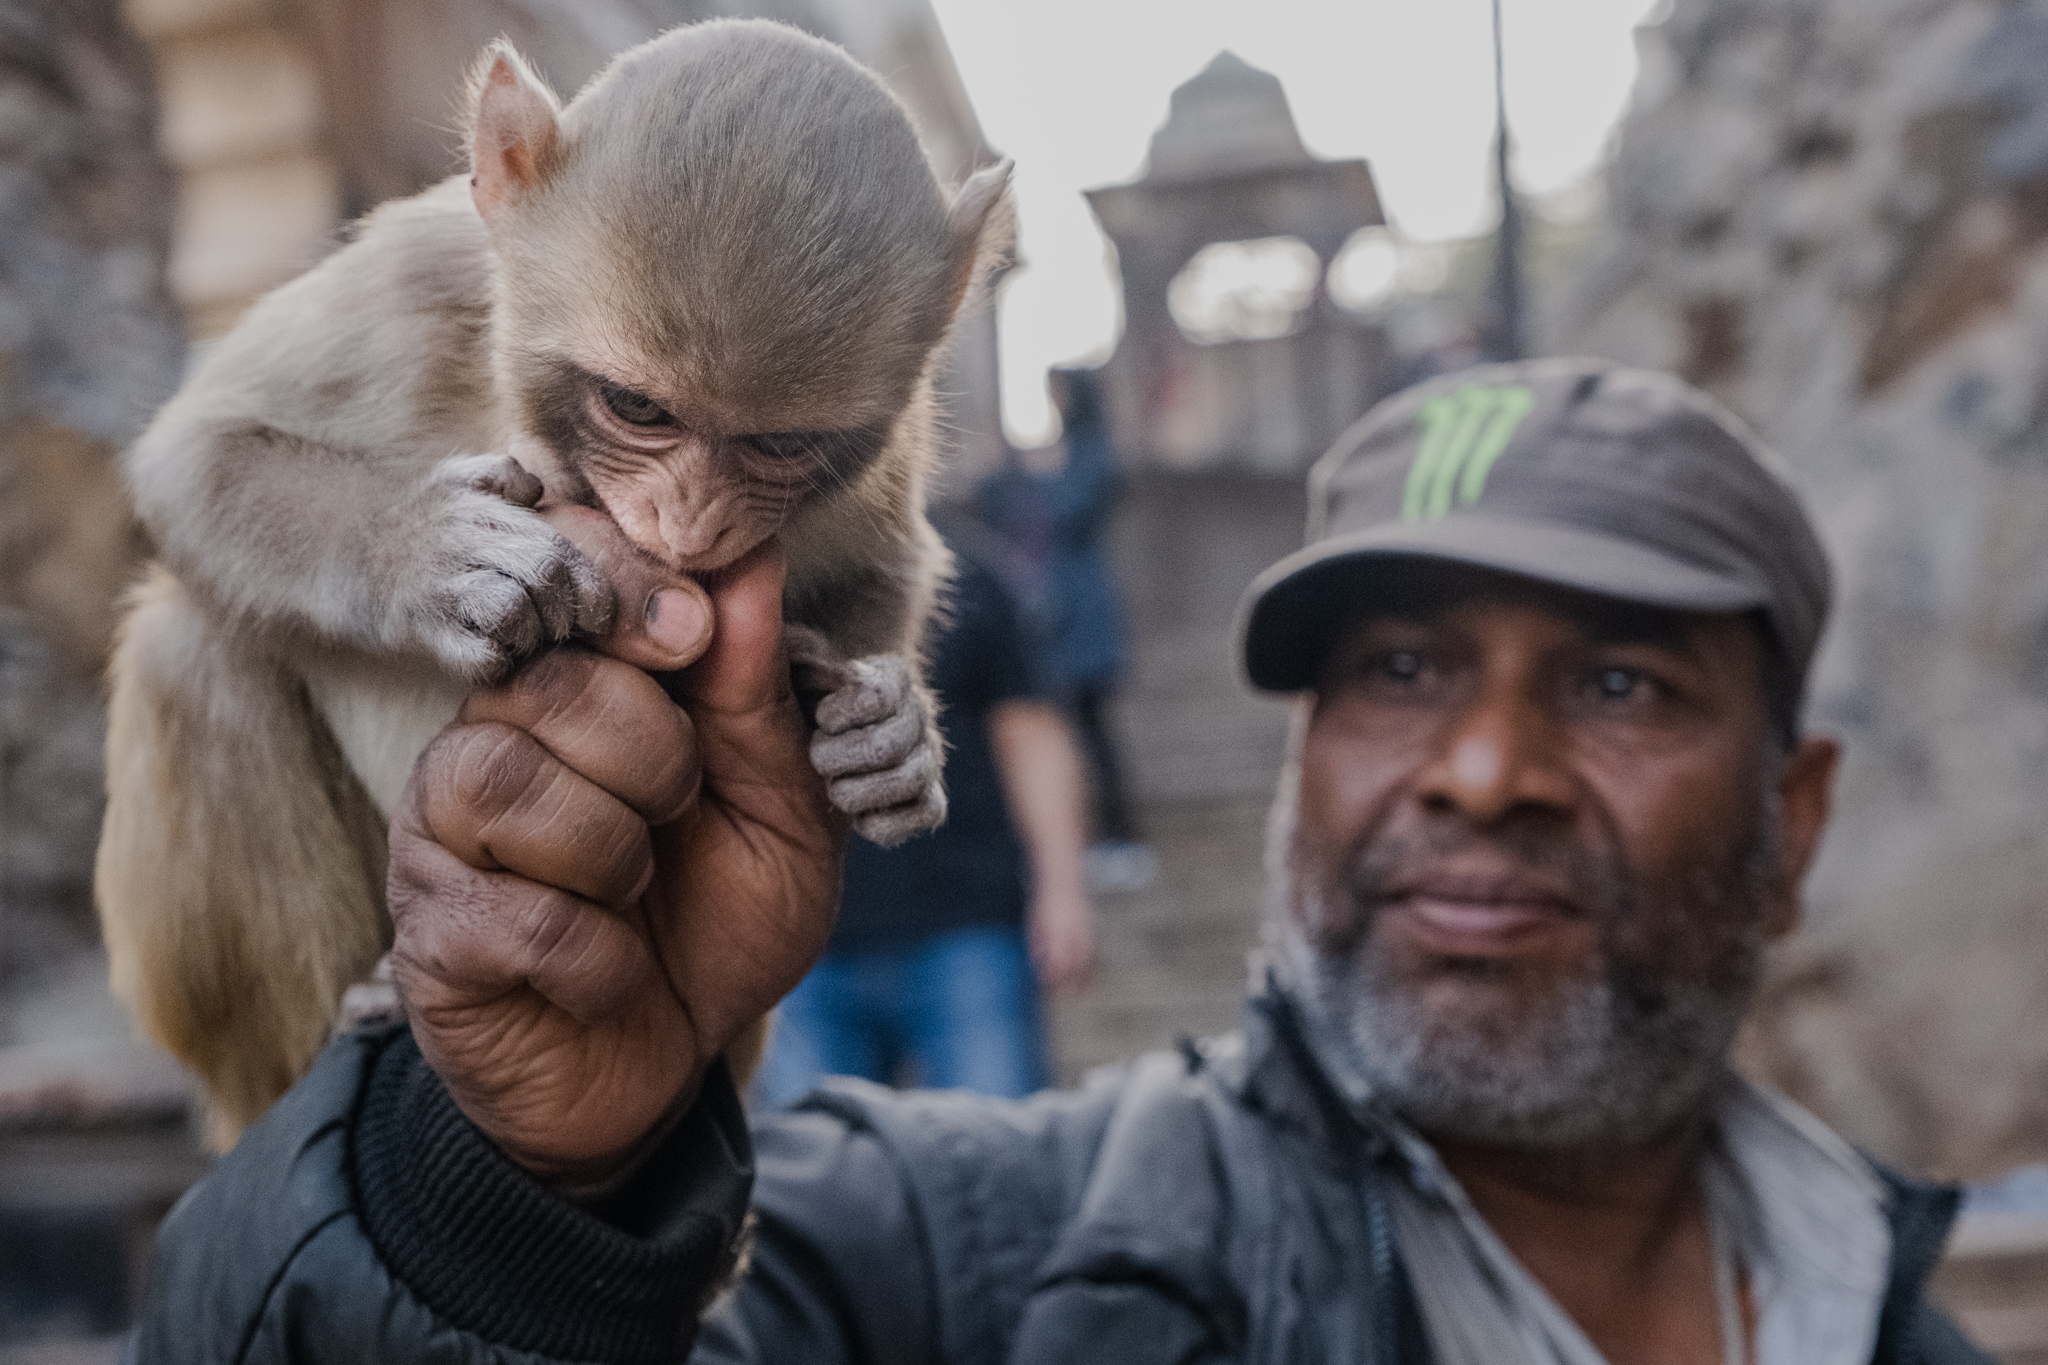 Man feeding a baby monkey